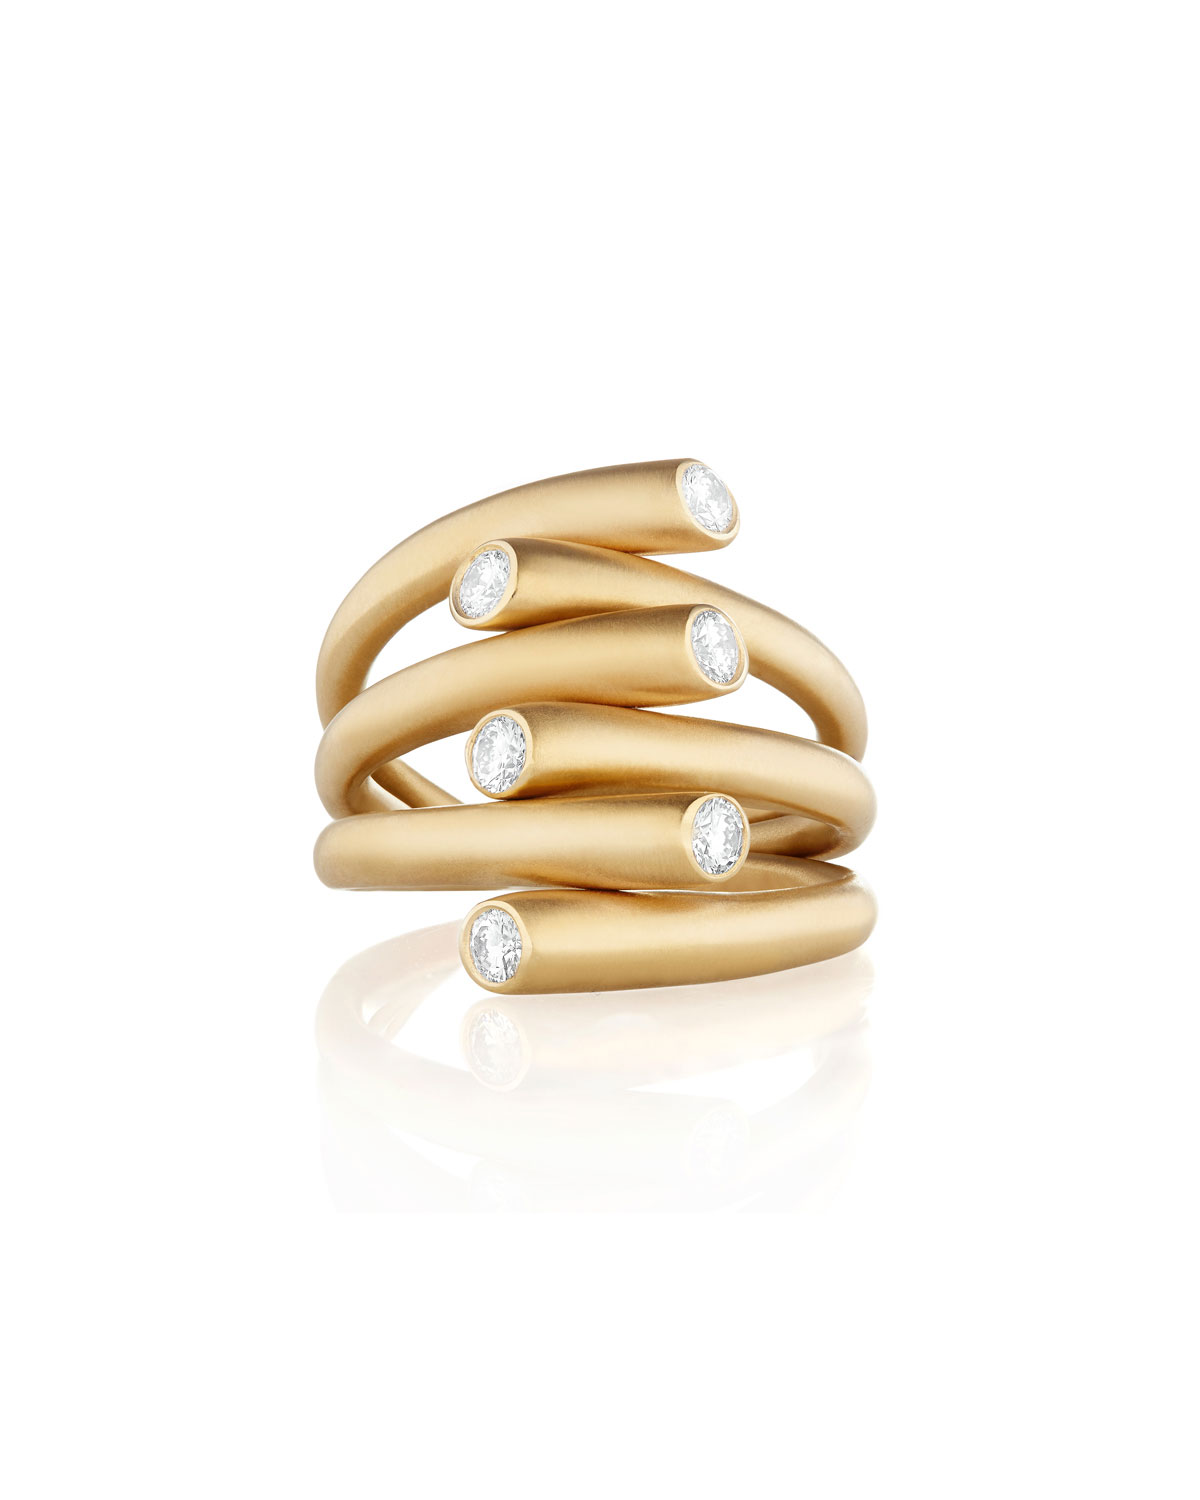 CARELLE 18K MULTI-ROW RING WITH DIAMONDS, SIZE 6.5